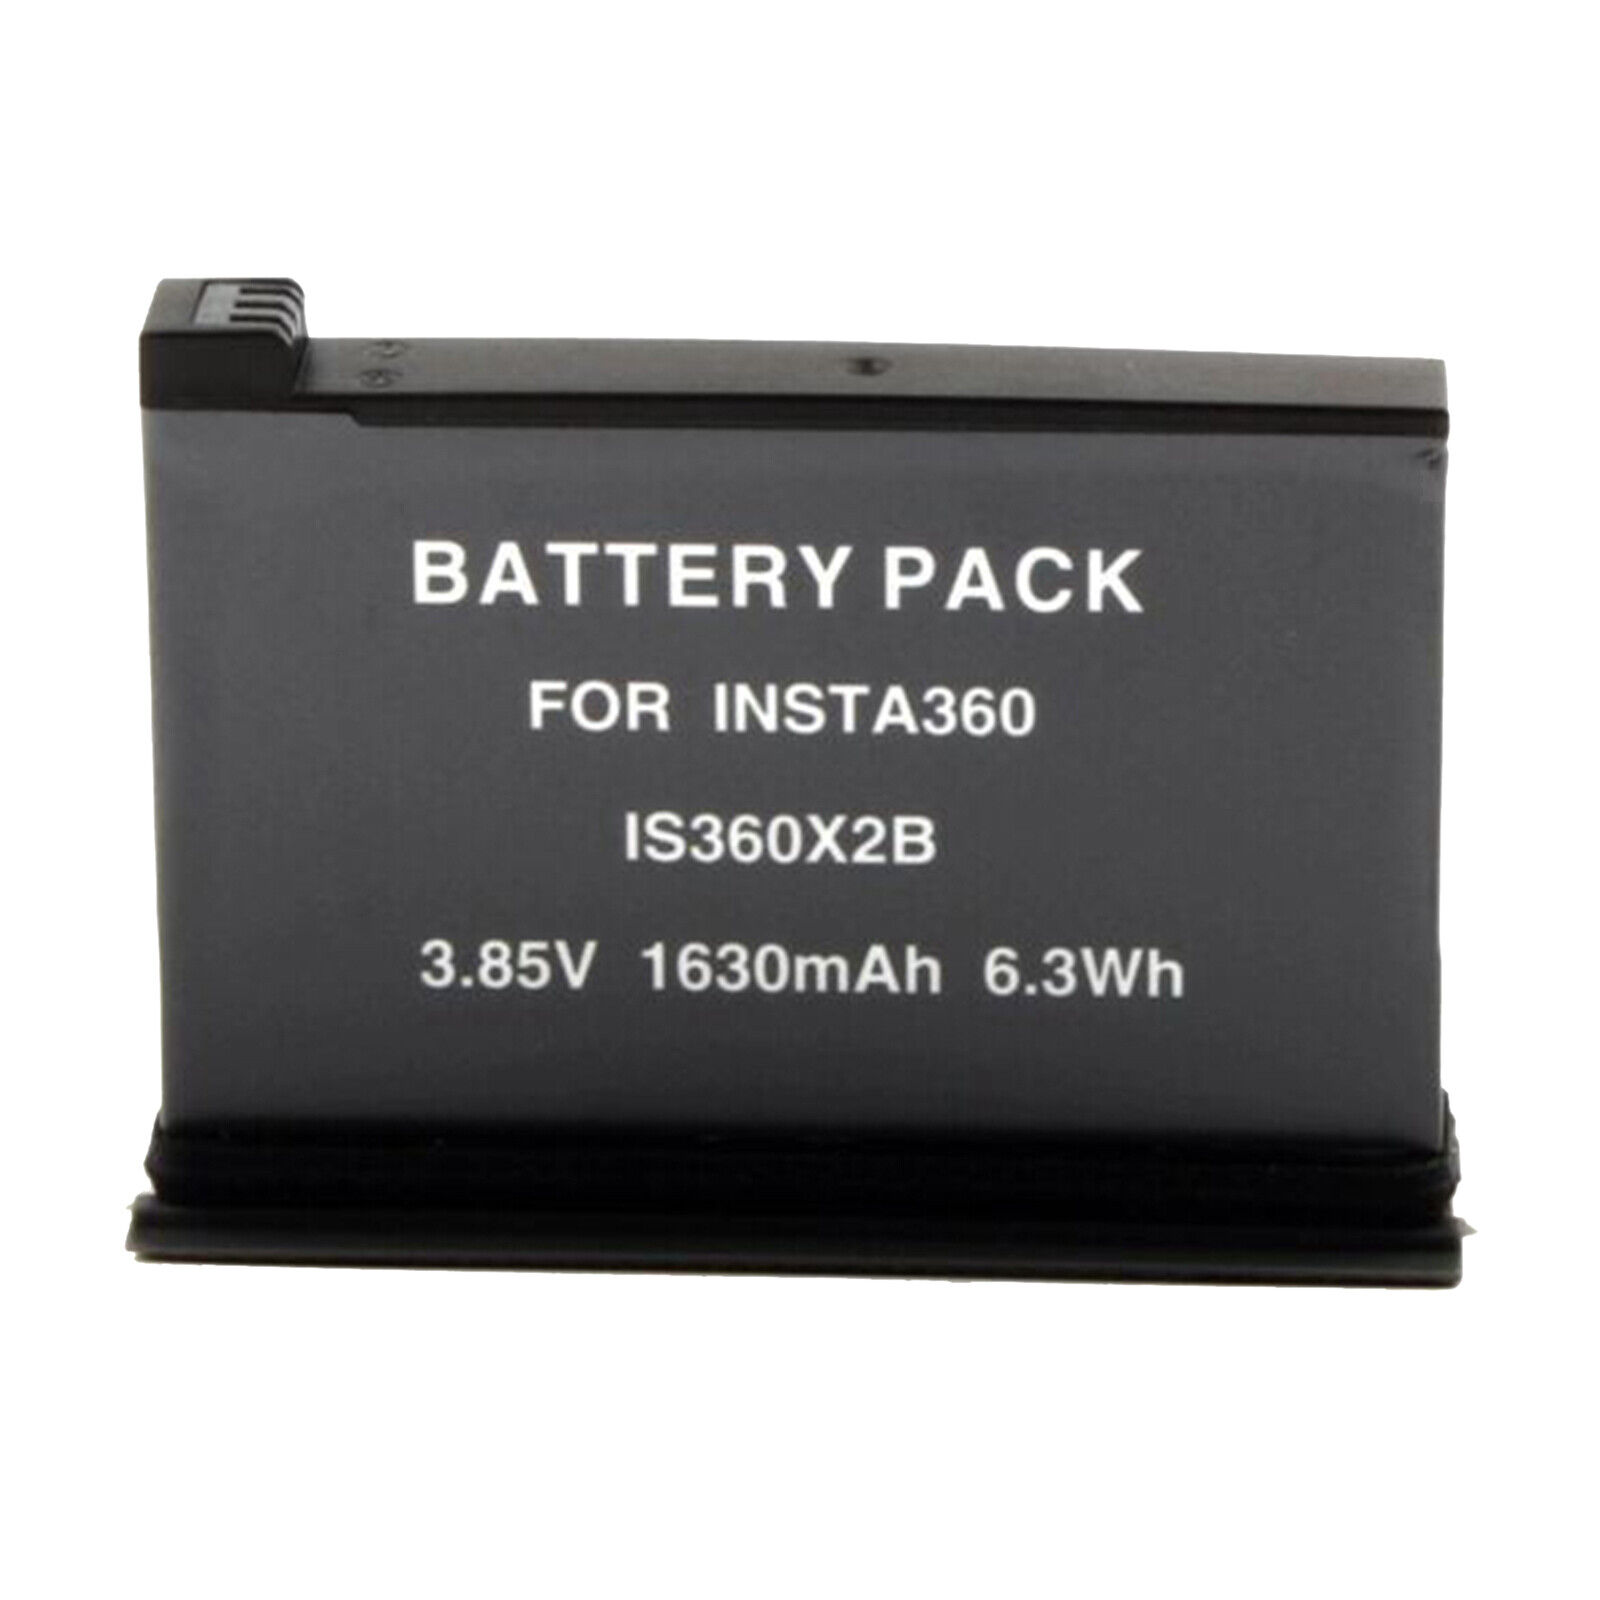 1630mAh Battery Pack Replacement for Insta360 ONE X2 Action Camera Accessories